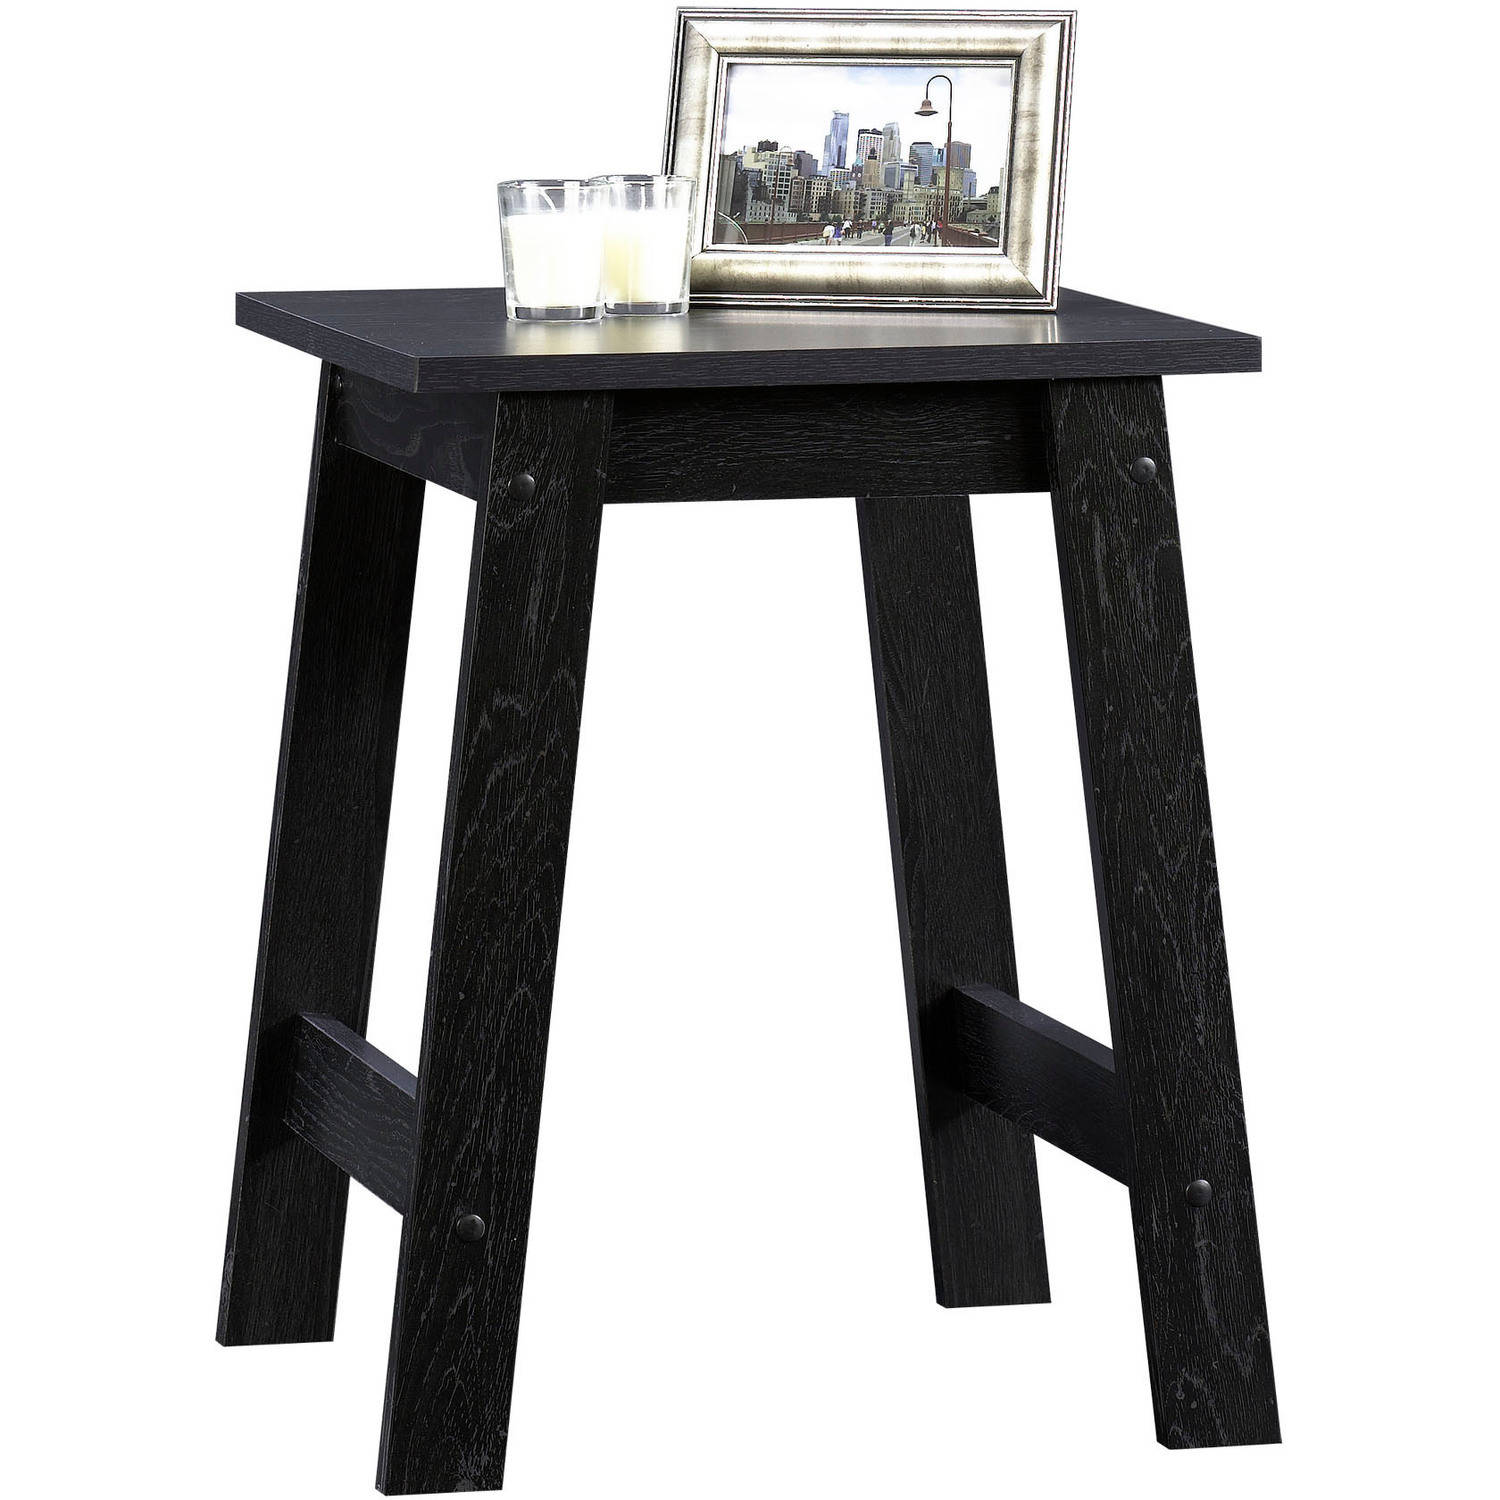 - Sauder Beginnings Collection Side Table, Black - Walmart.com